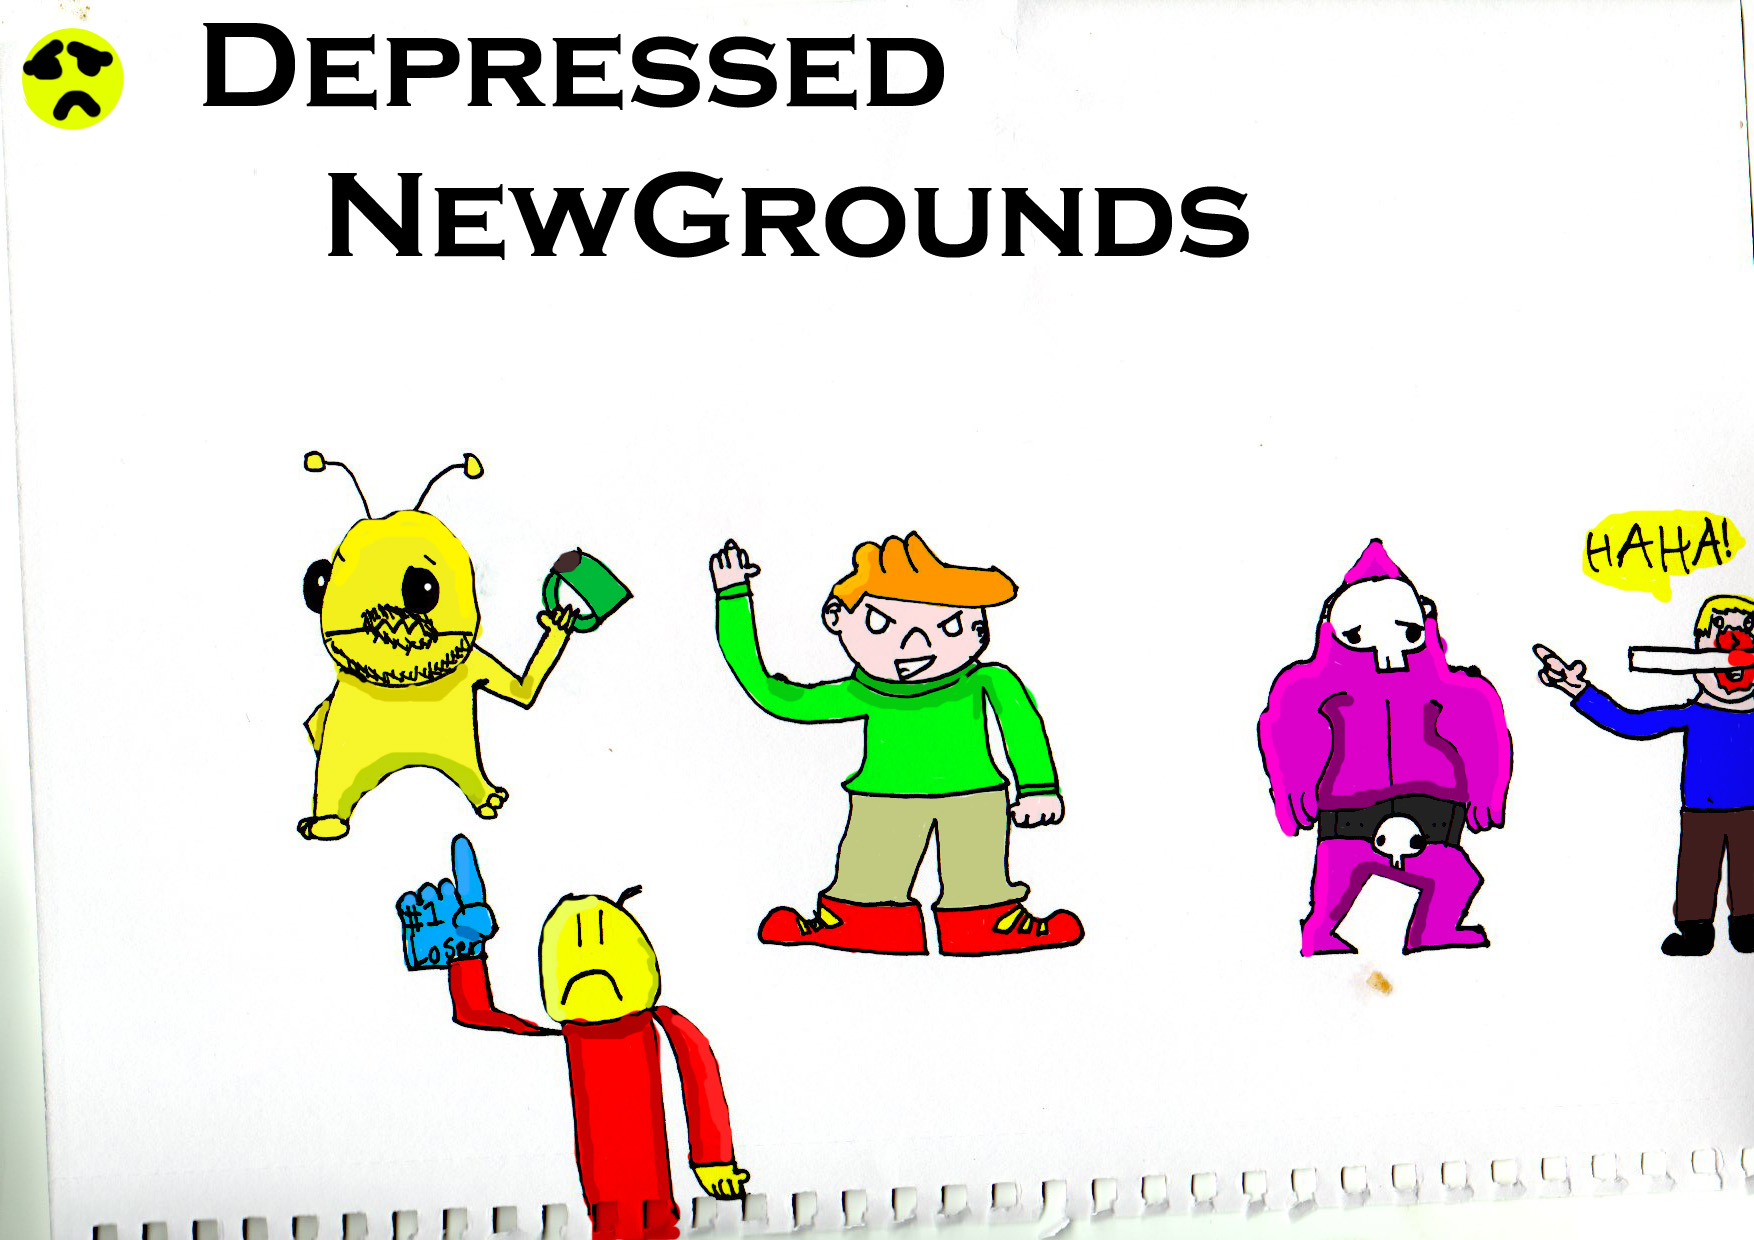 The other side of Newgrounds